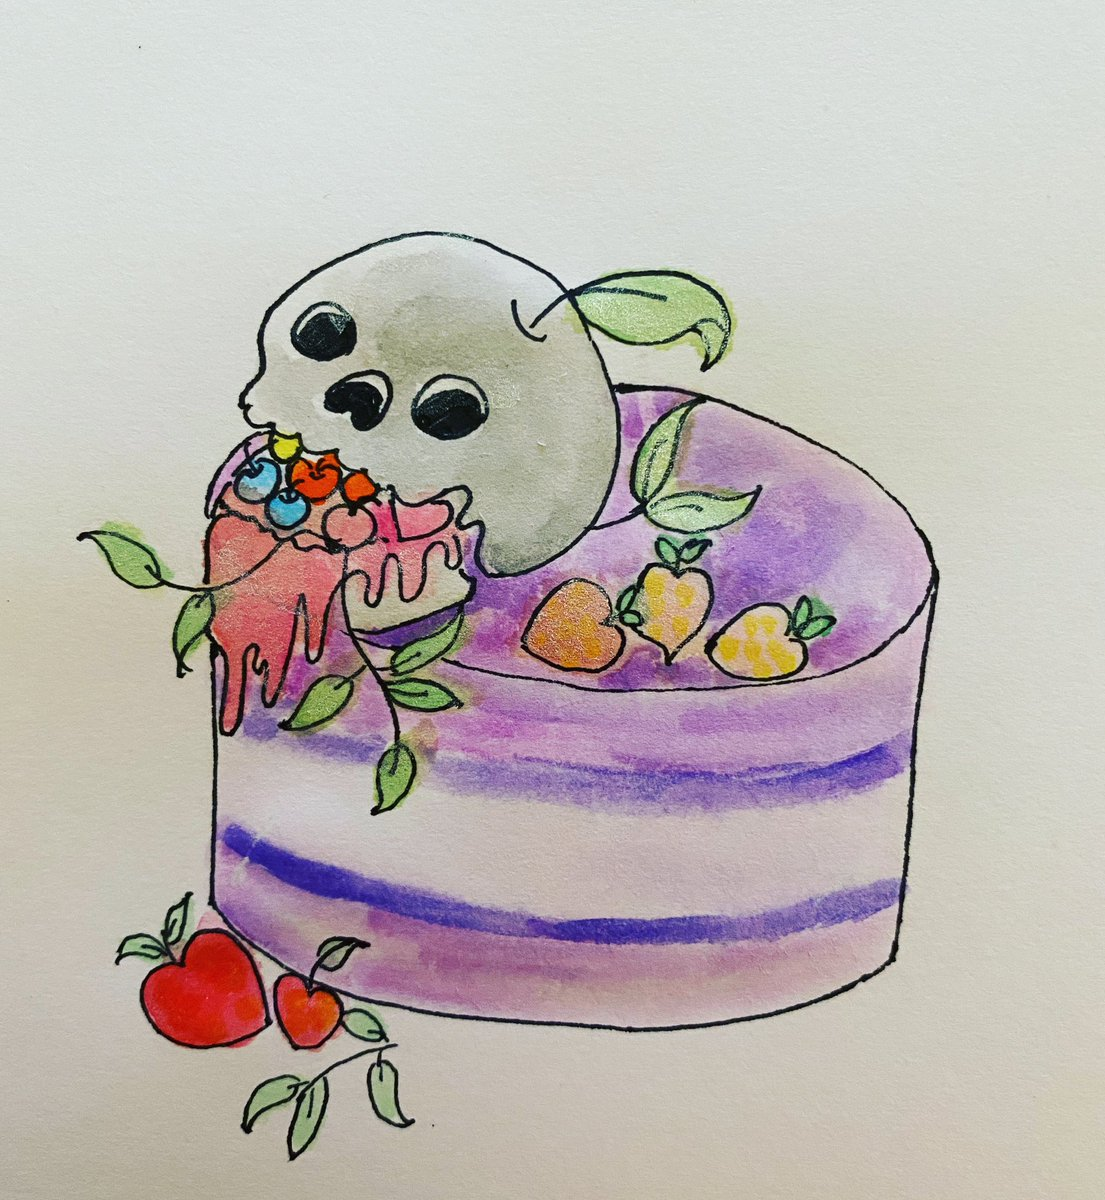 I want this cake for my bday #drawing #drawingoftheday #artistsupportartists #artistsupport #cake #cakedecorating #skullartwork #creepycuteart #watercolorpainting #watercolor #sketchbook #sketchingpic.twitter.com/FRmTmpjQCU